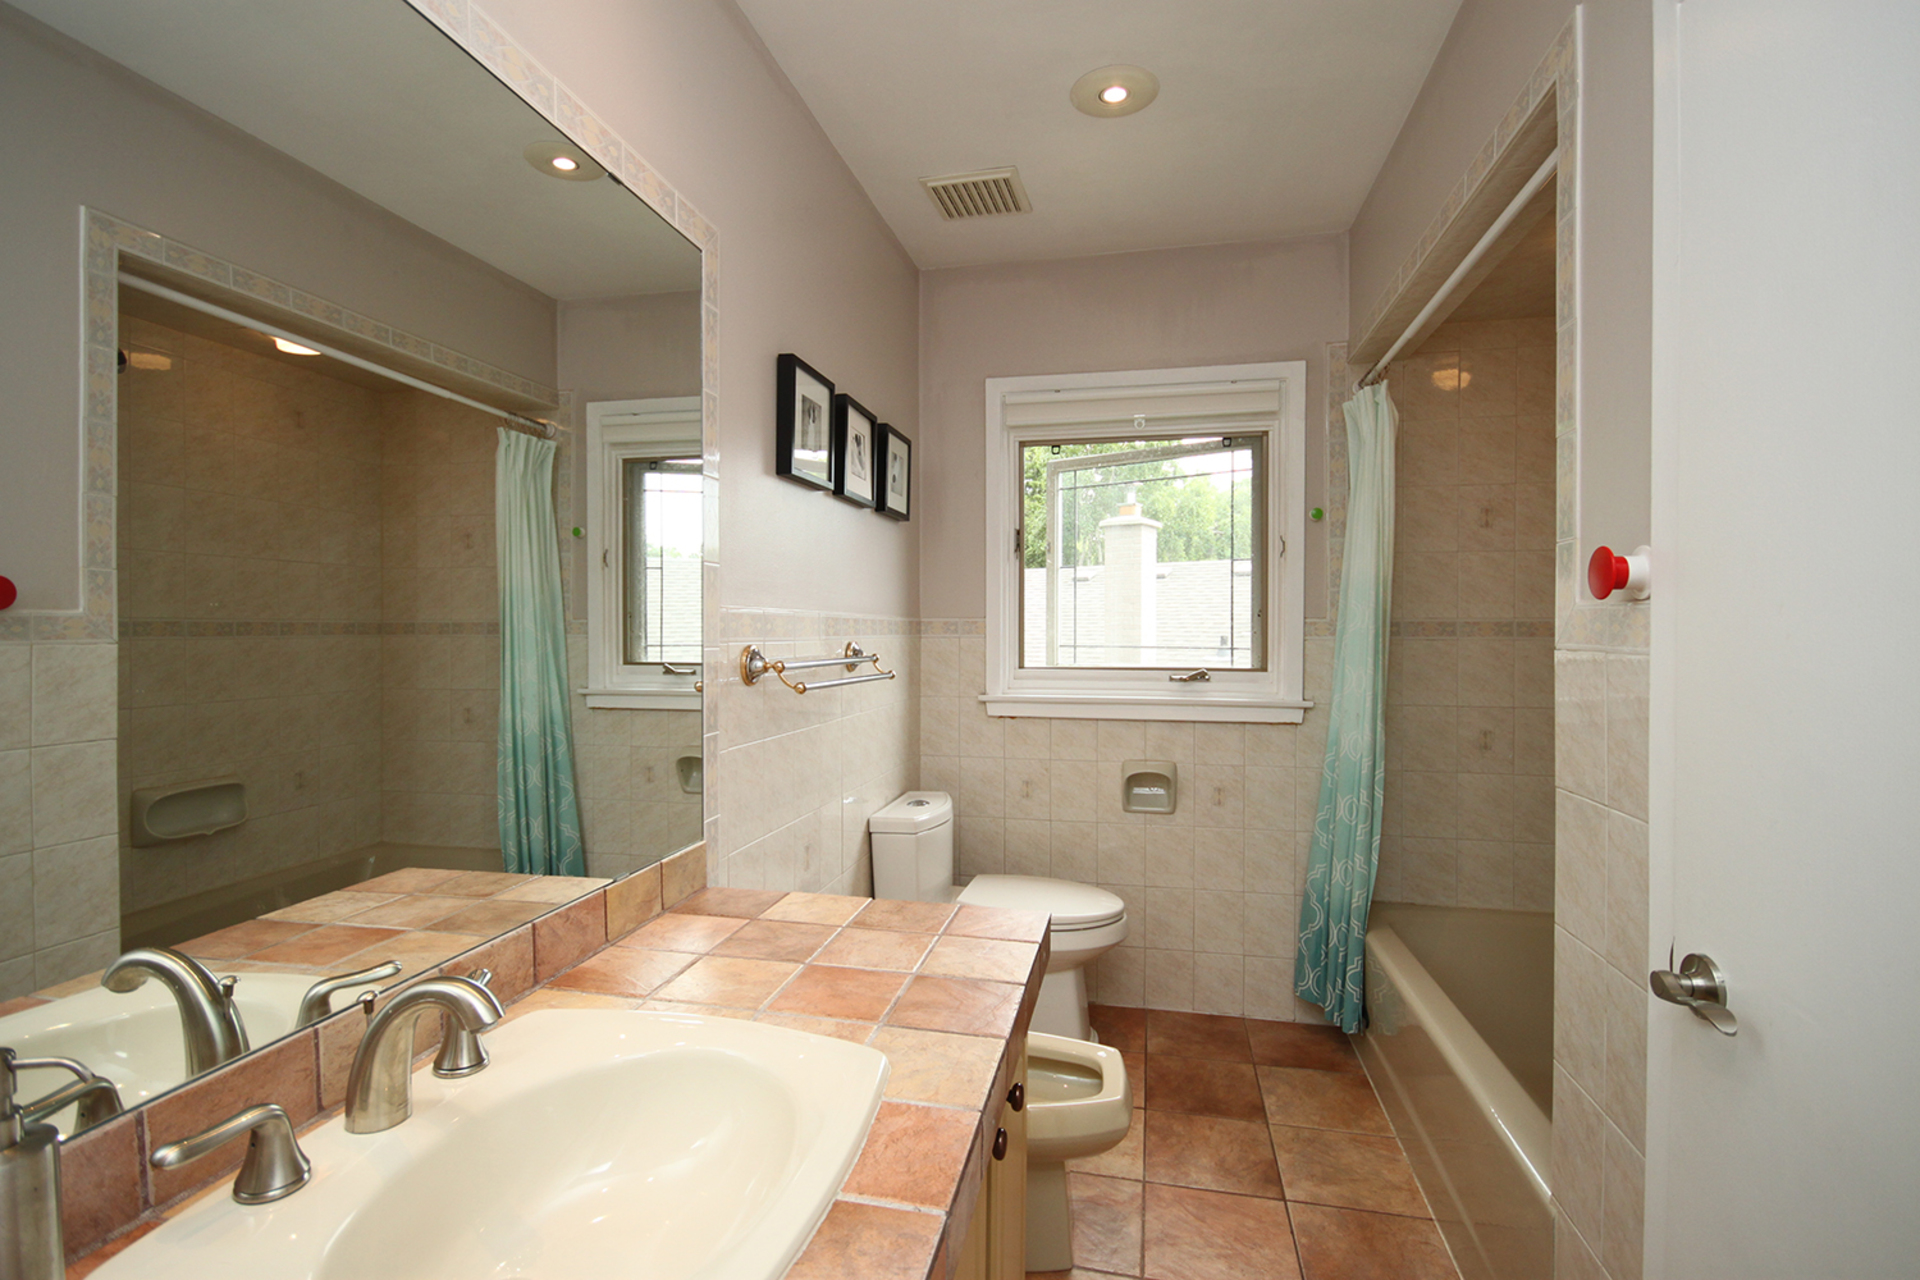 5 Piece Bathroom at 15 Brushwood Court, Parkwoods-Donalda, Toronto